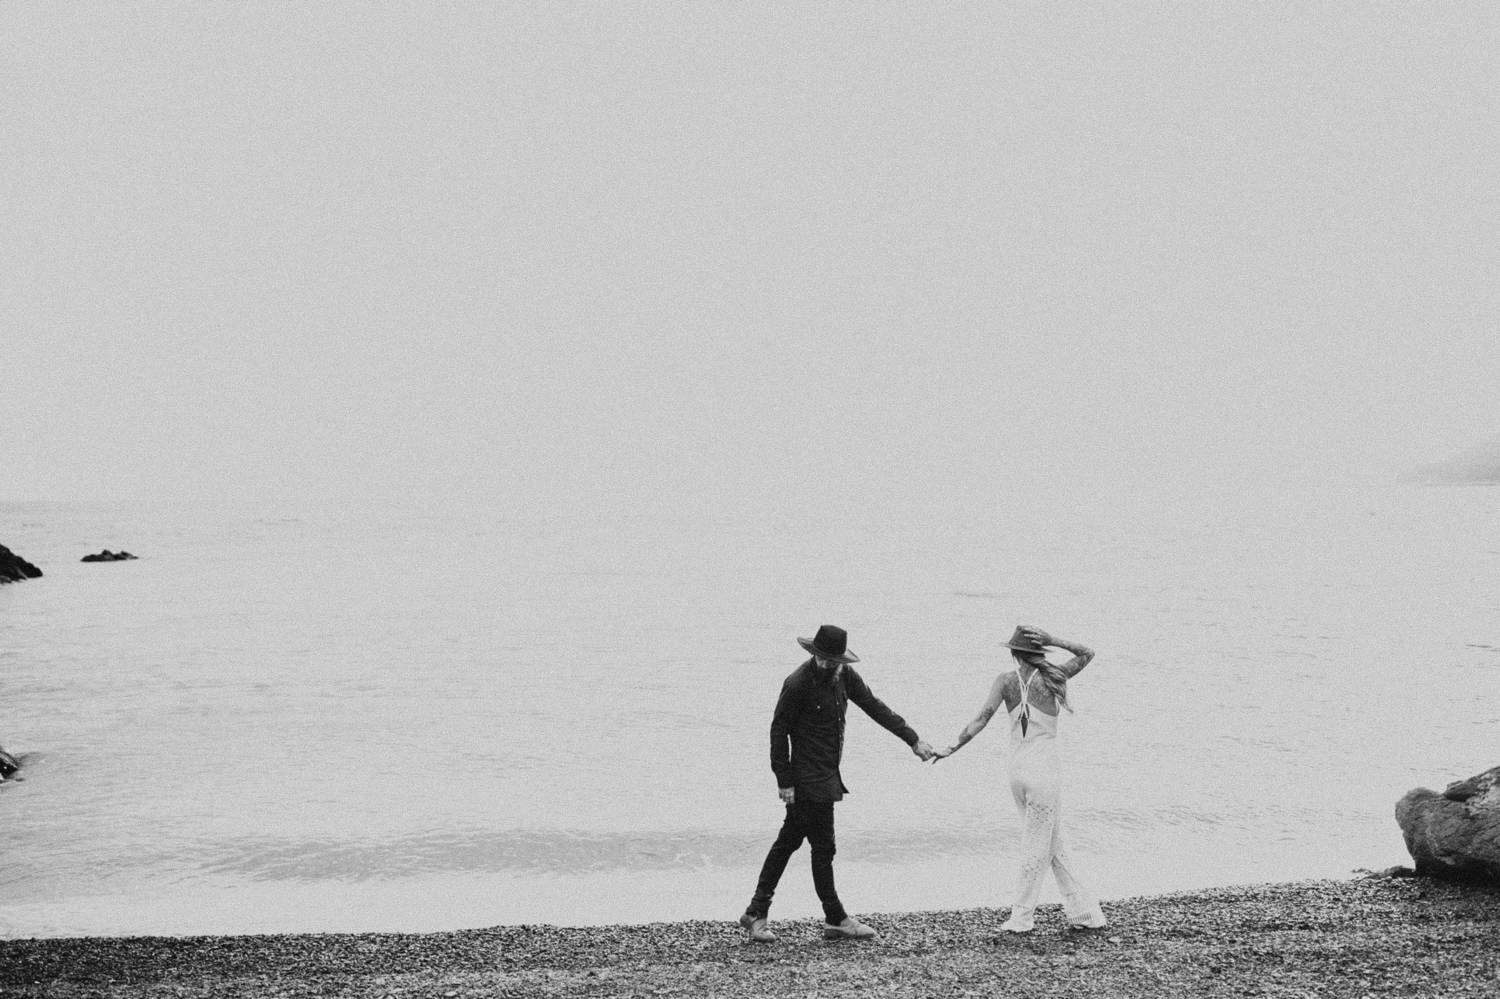 A man dressed in black holds hands with a woman dressed in white as they stroll along the beach in this moody black and white photo by Brittany Boote